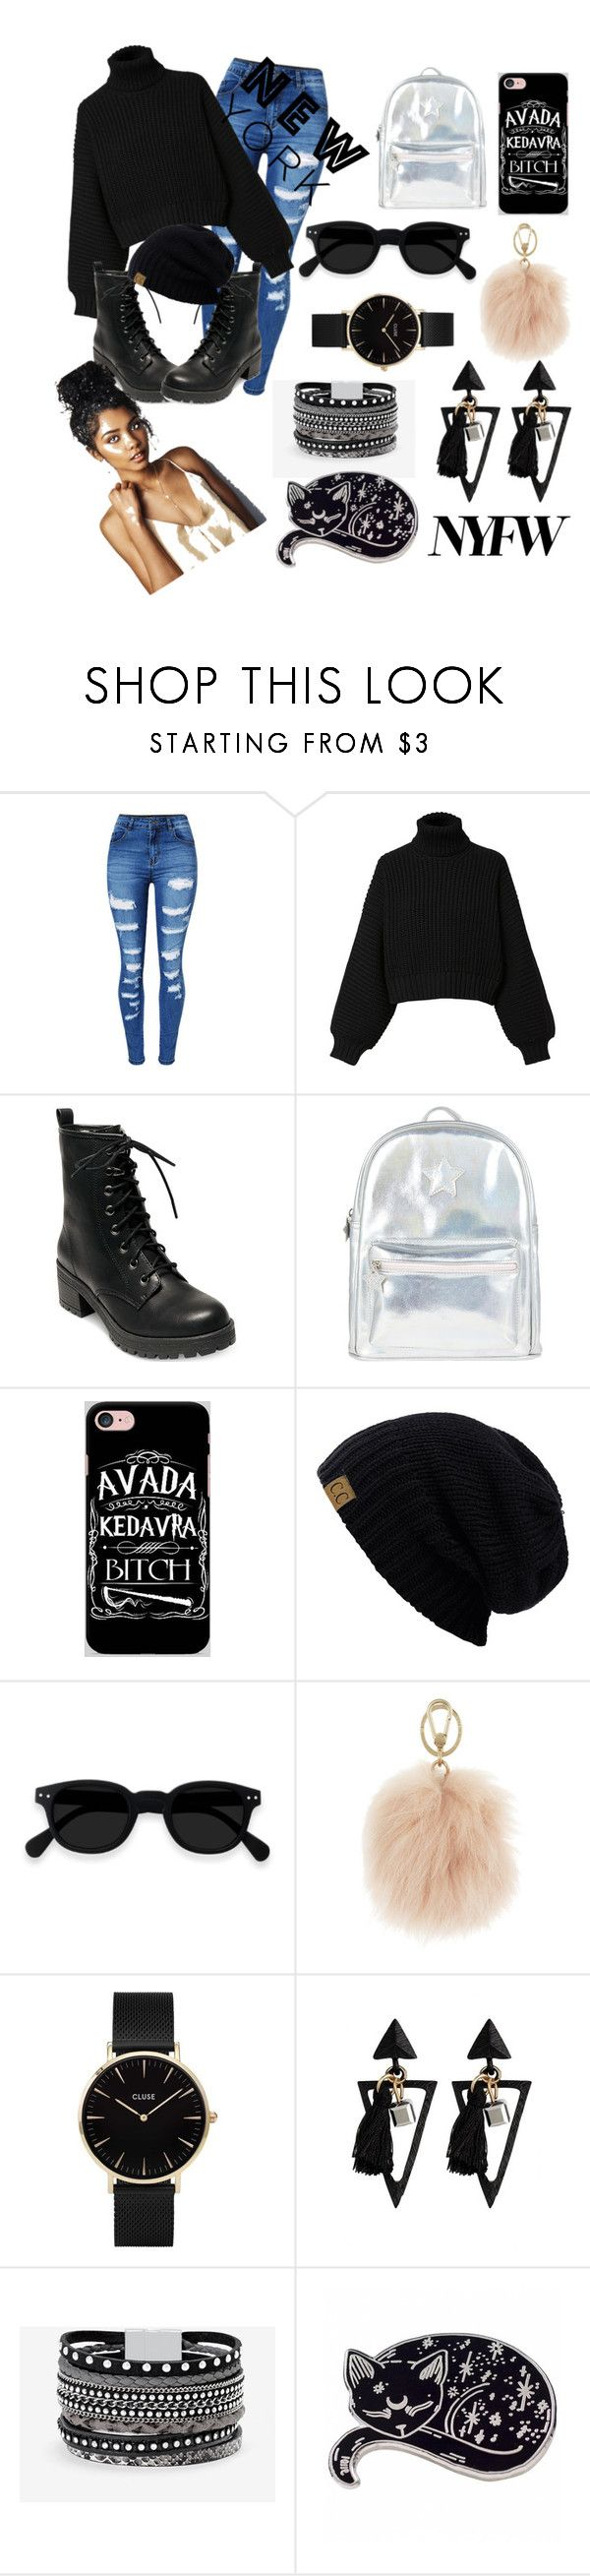 """""""New York Fashion Weekkkkk"""" by issaasnackk ❤ liked on Polyvore featuring WithChic, Diesel, Madden Girl, Accessorize, Samsung, Furla, CLUSE and White House Black Market"""